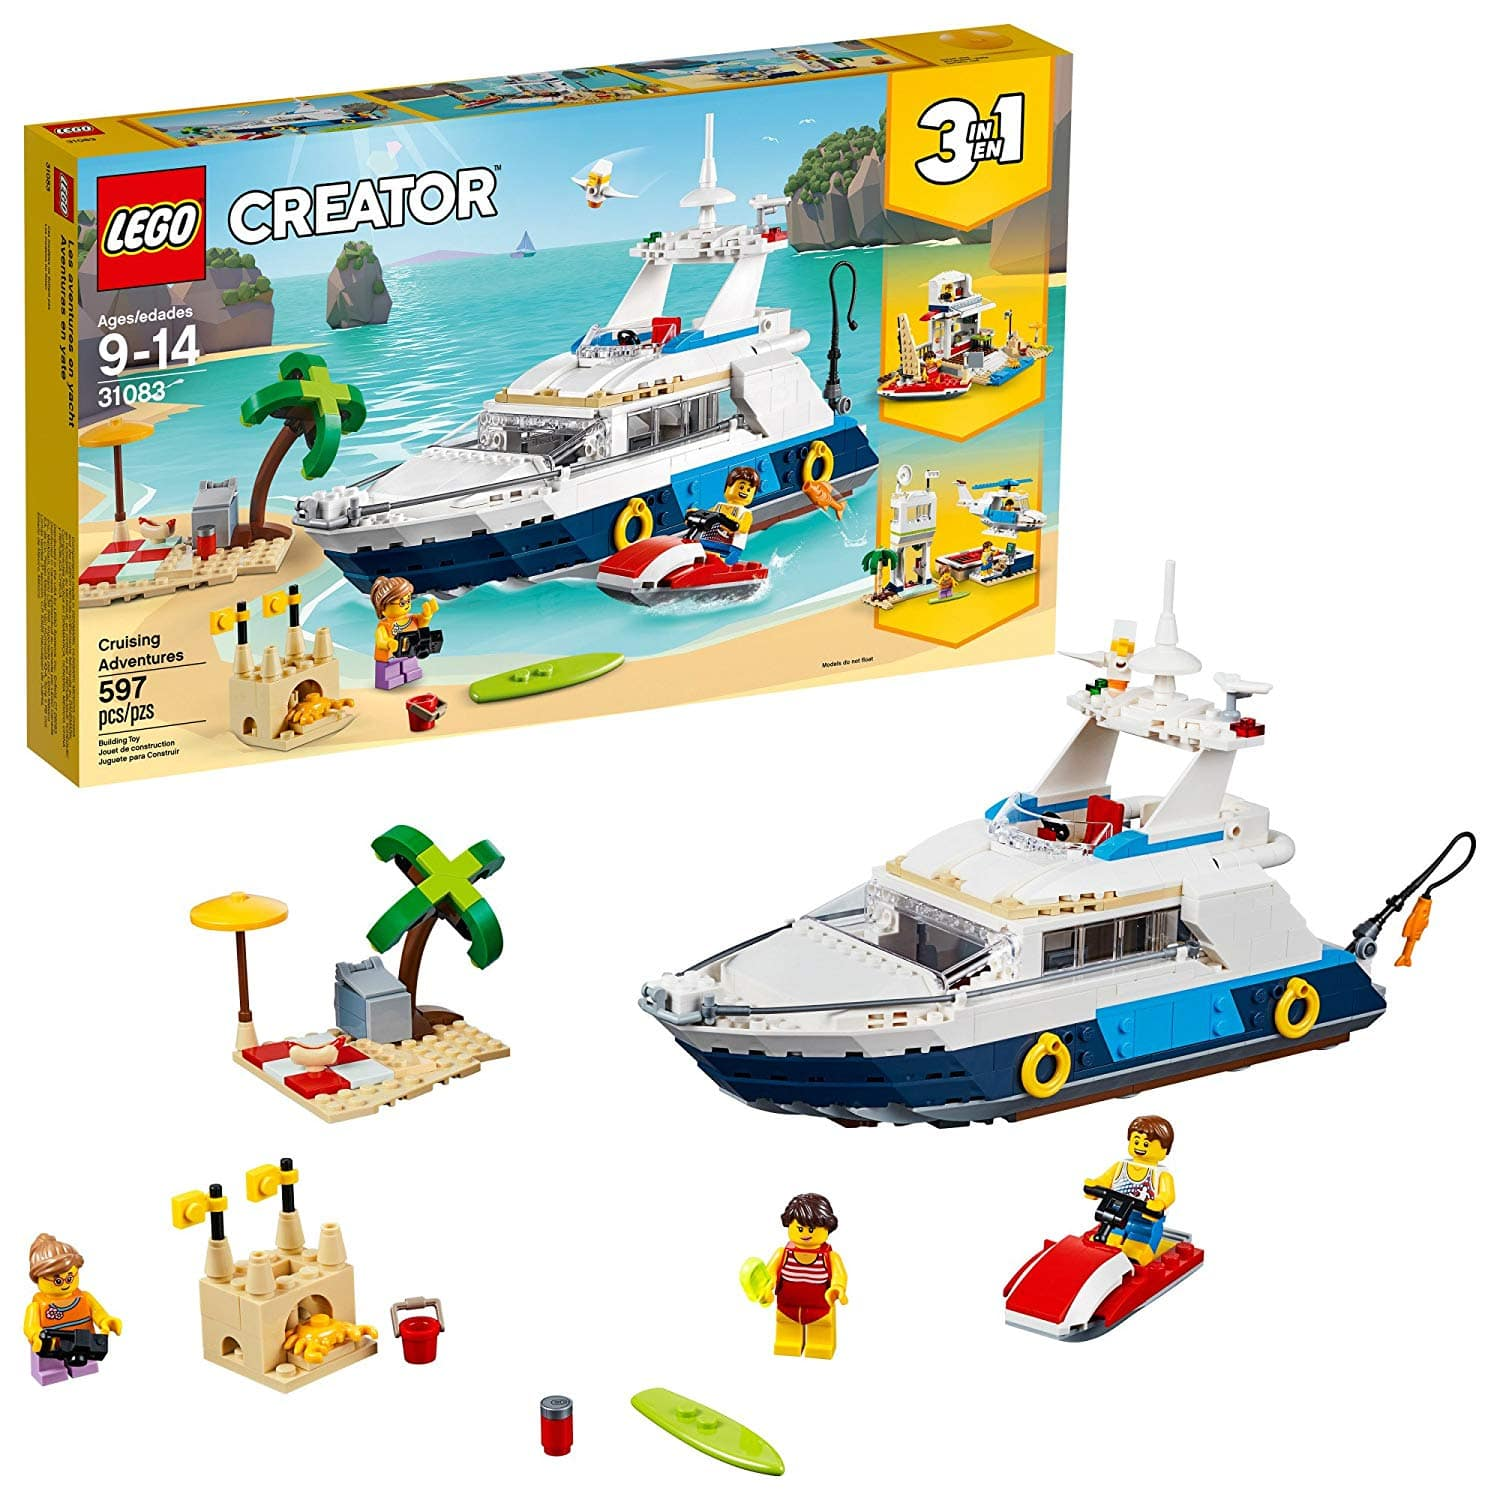 Target B&M: LEGO Creator 3in1 Cruising Adventures 31083 Building Kit (597 Pieces) for $30 and free in-store pickup